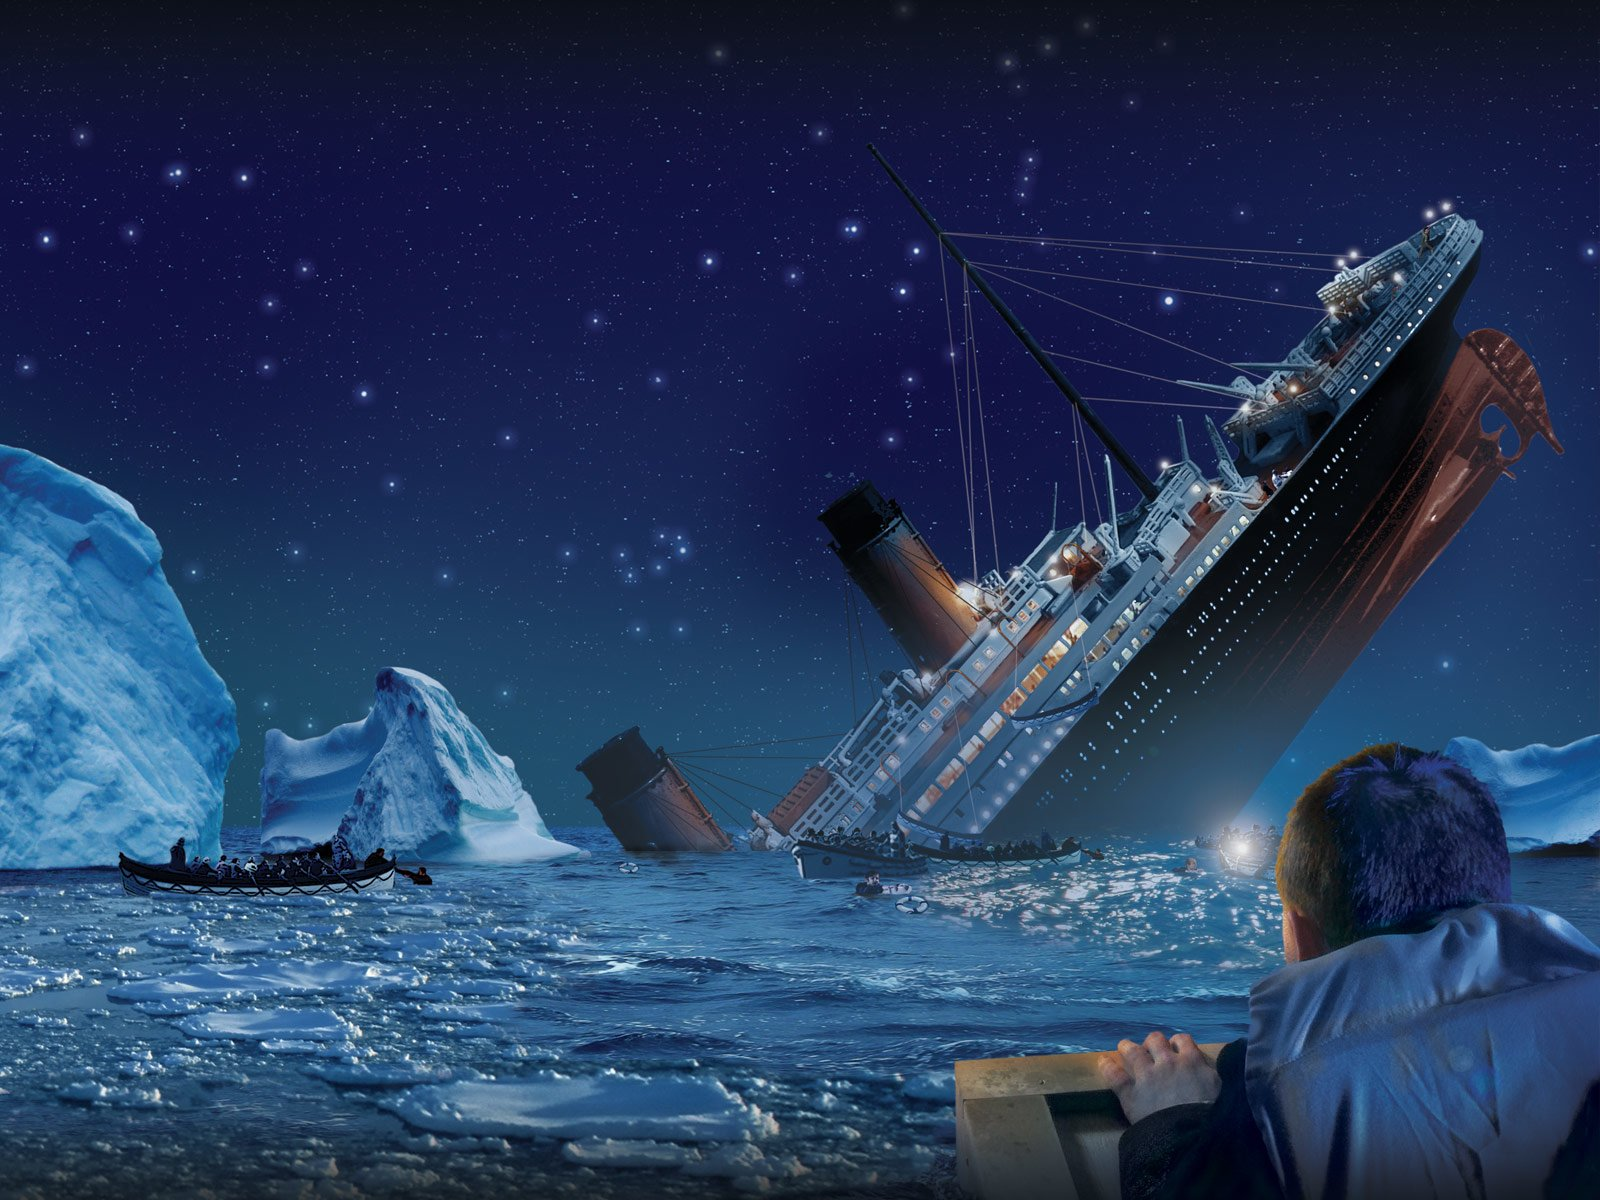 22 titanic hd wallpapers | background images - wallpaper abyss